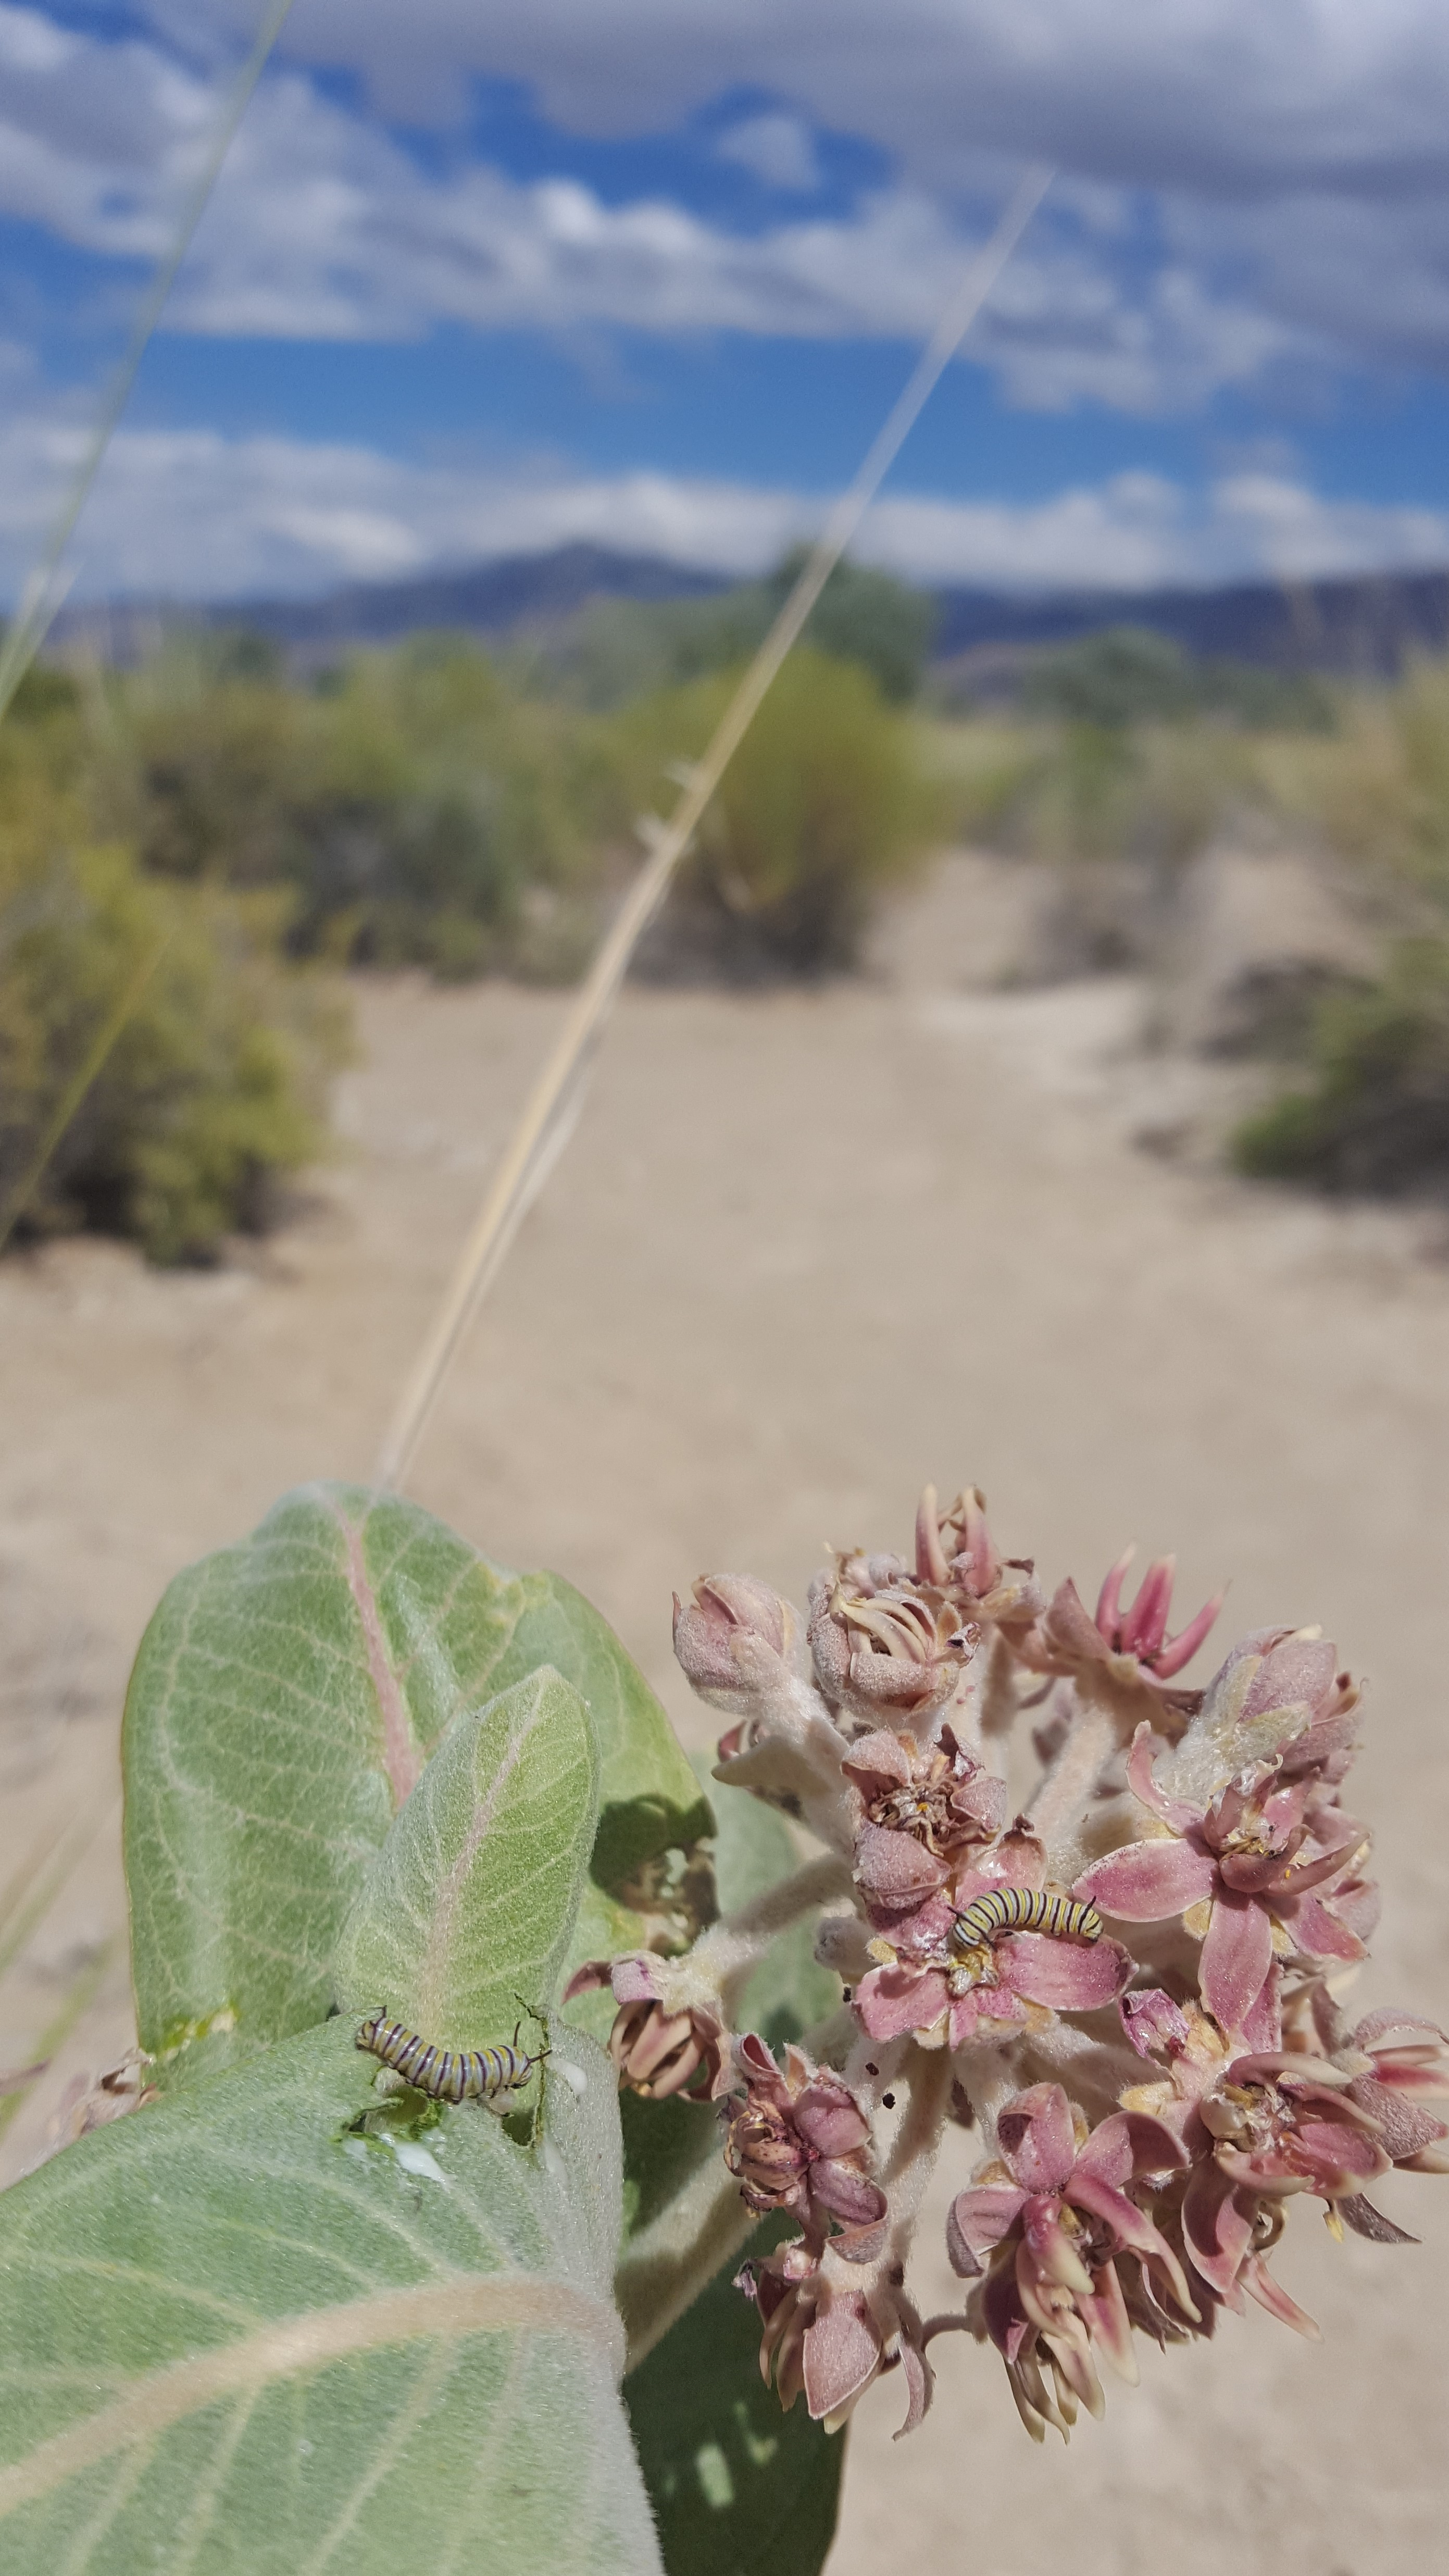 A monarch caterpillar (with yellow, black, and white stripes) crawls on a plant with pale green leaves and pink flowers, with an arid landscape in the background.